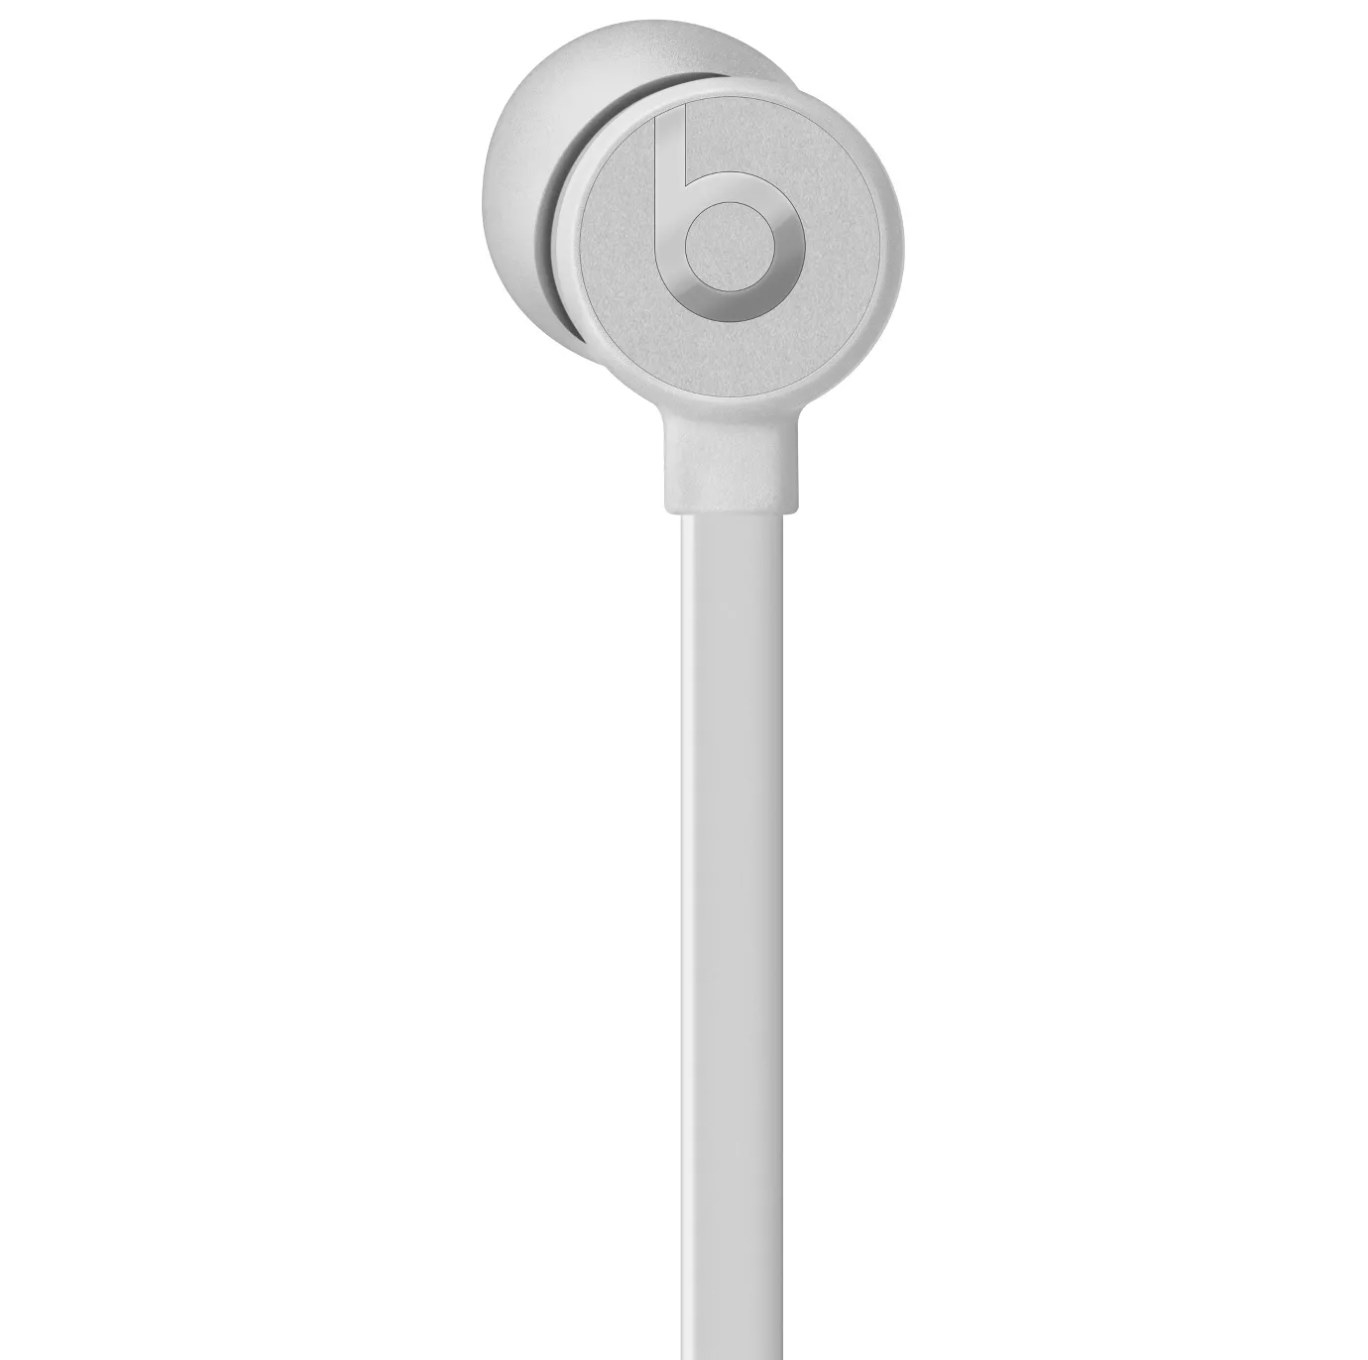 A white urBeats3 earphone